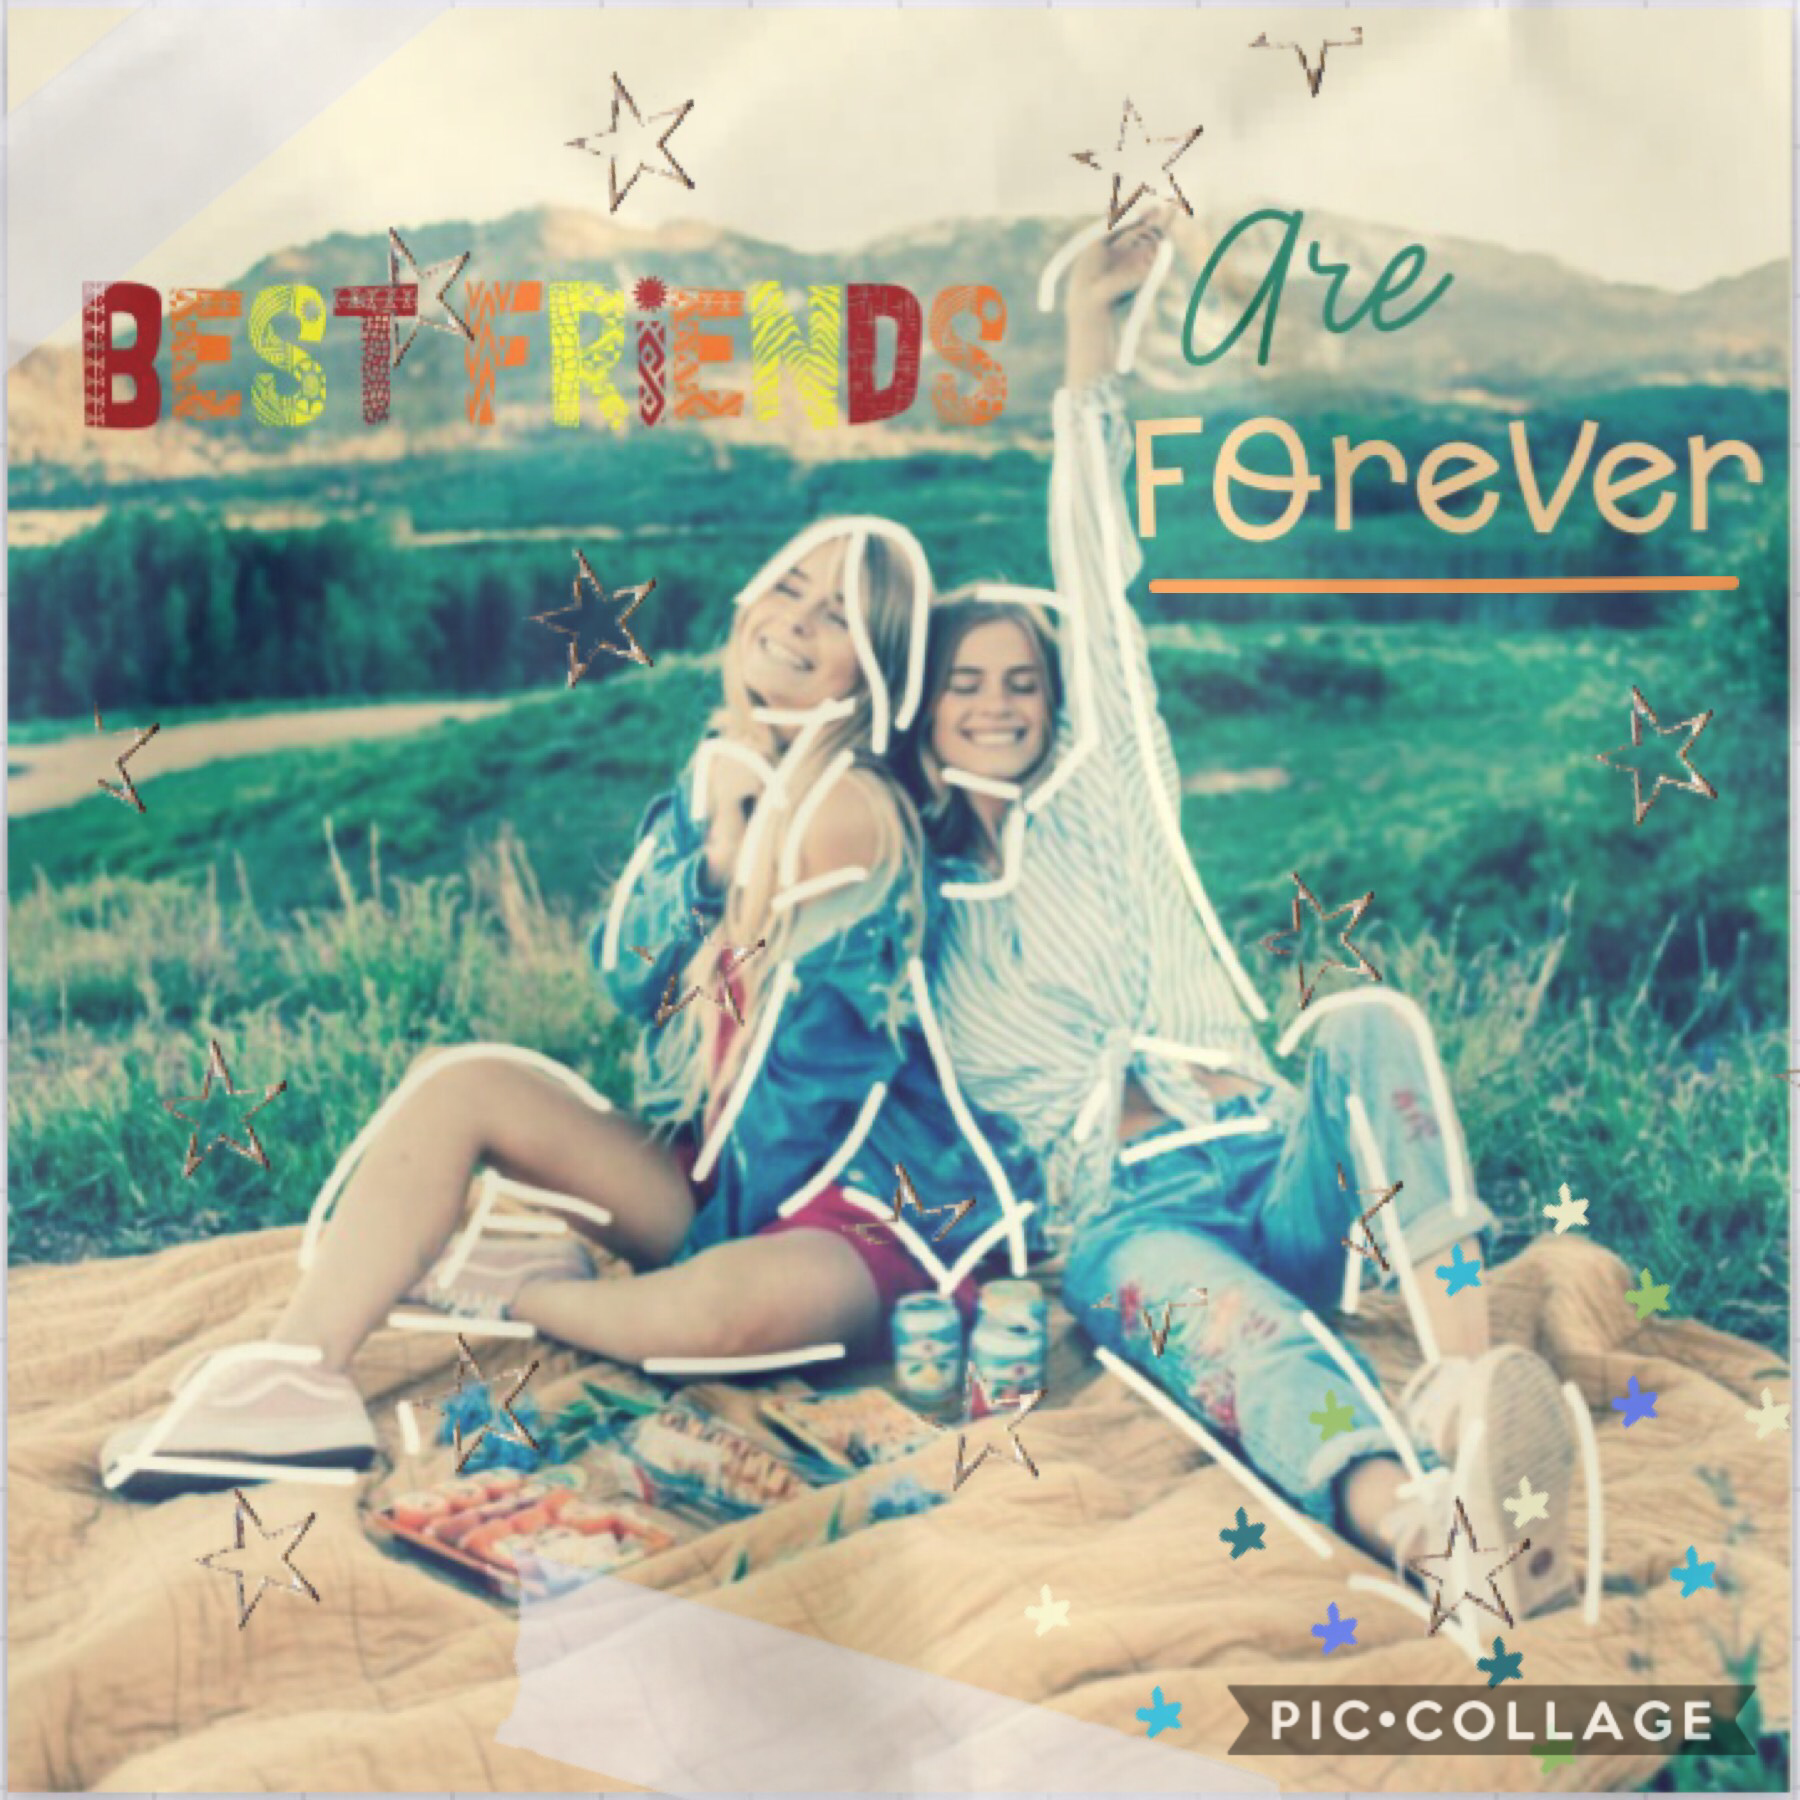 ❤️tap❤️   'Best friends are forever'  Hi! Having a good day? This was my first time using fonts from outside of pc! How do you like it? Last day of school today 🥳 thanks again for 600 followers!